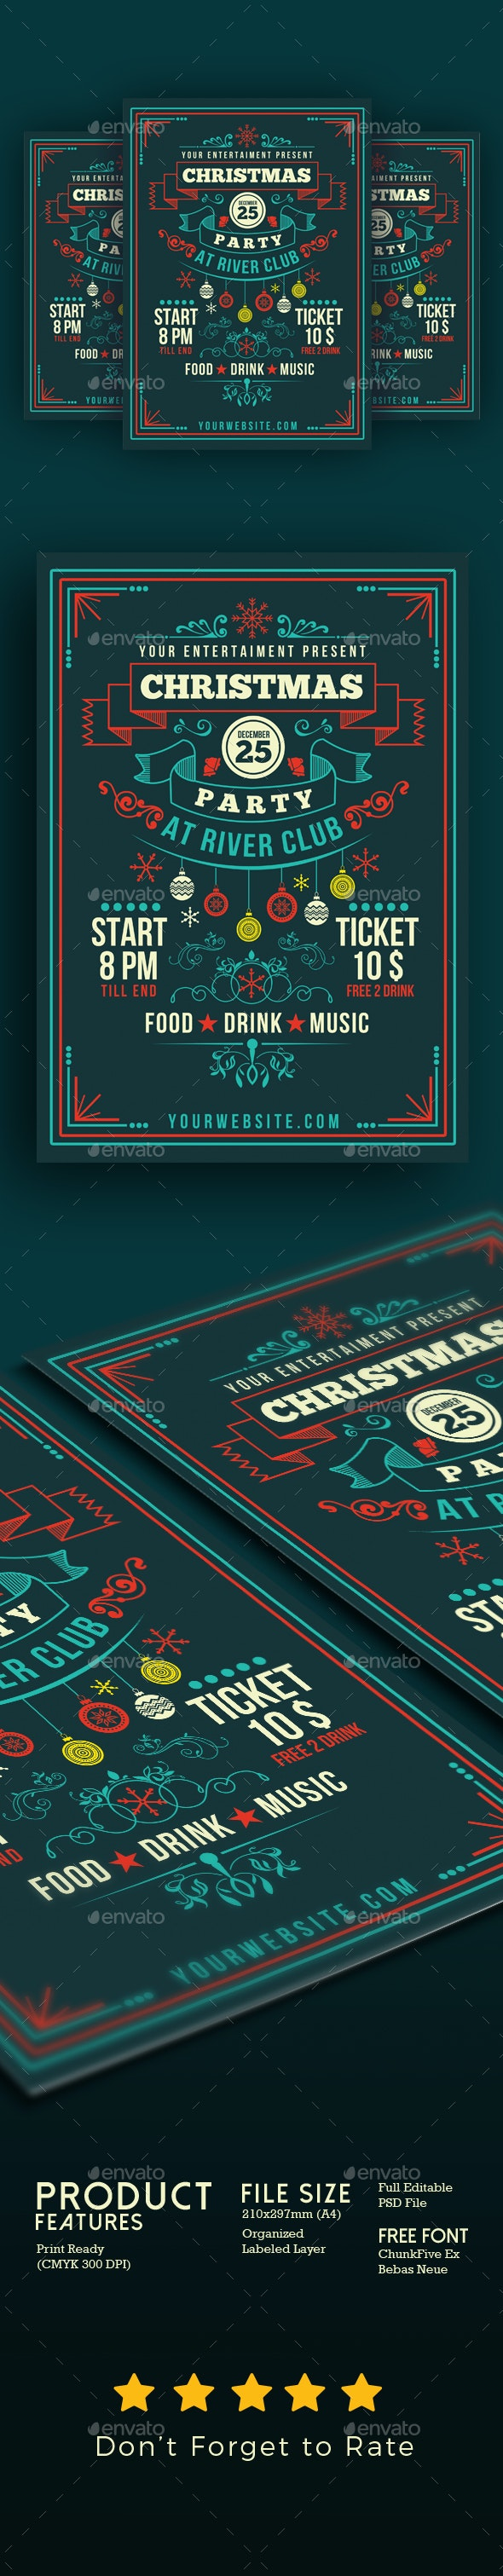 Christmas Party Art Deco Style - Events Flyers